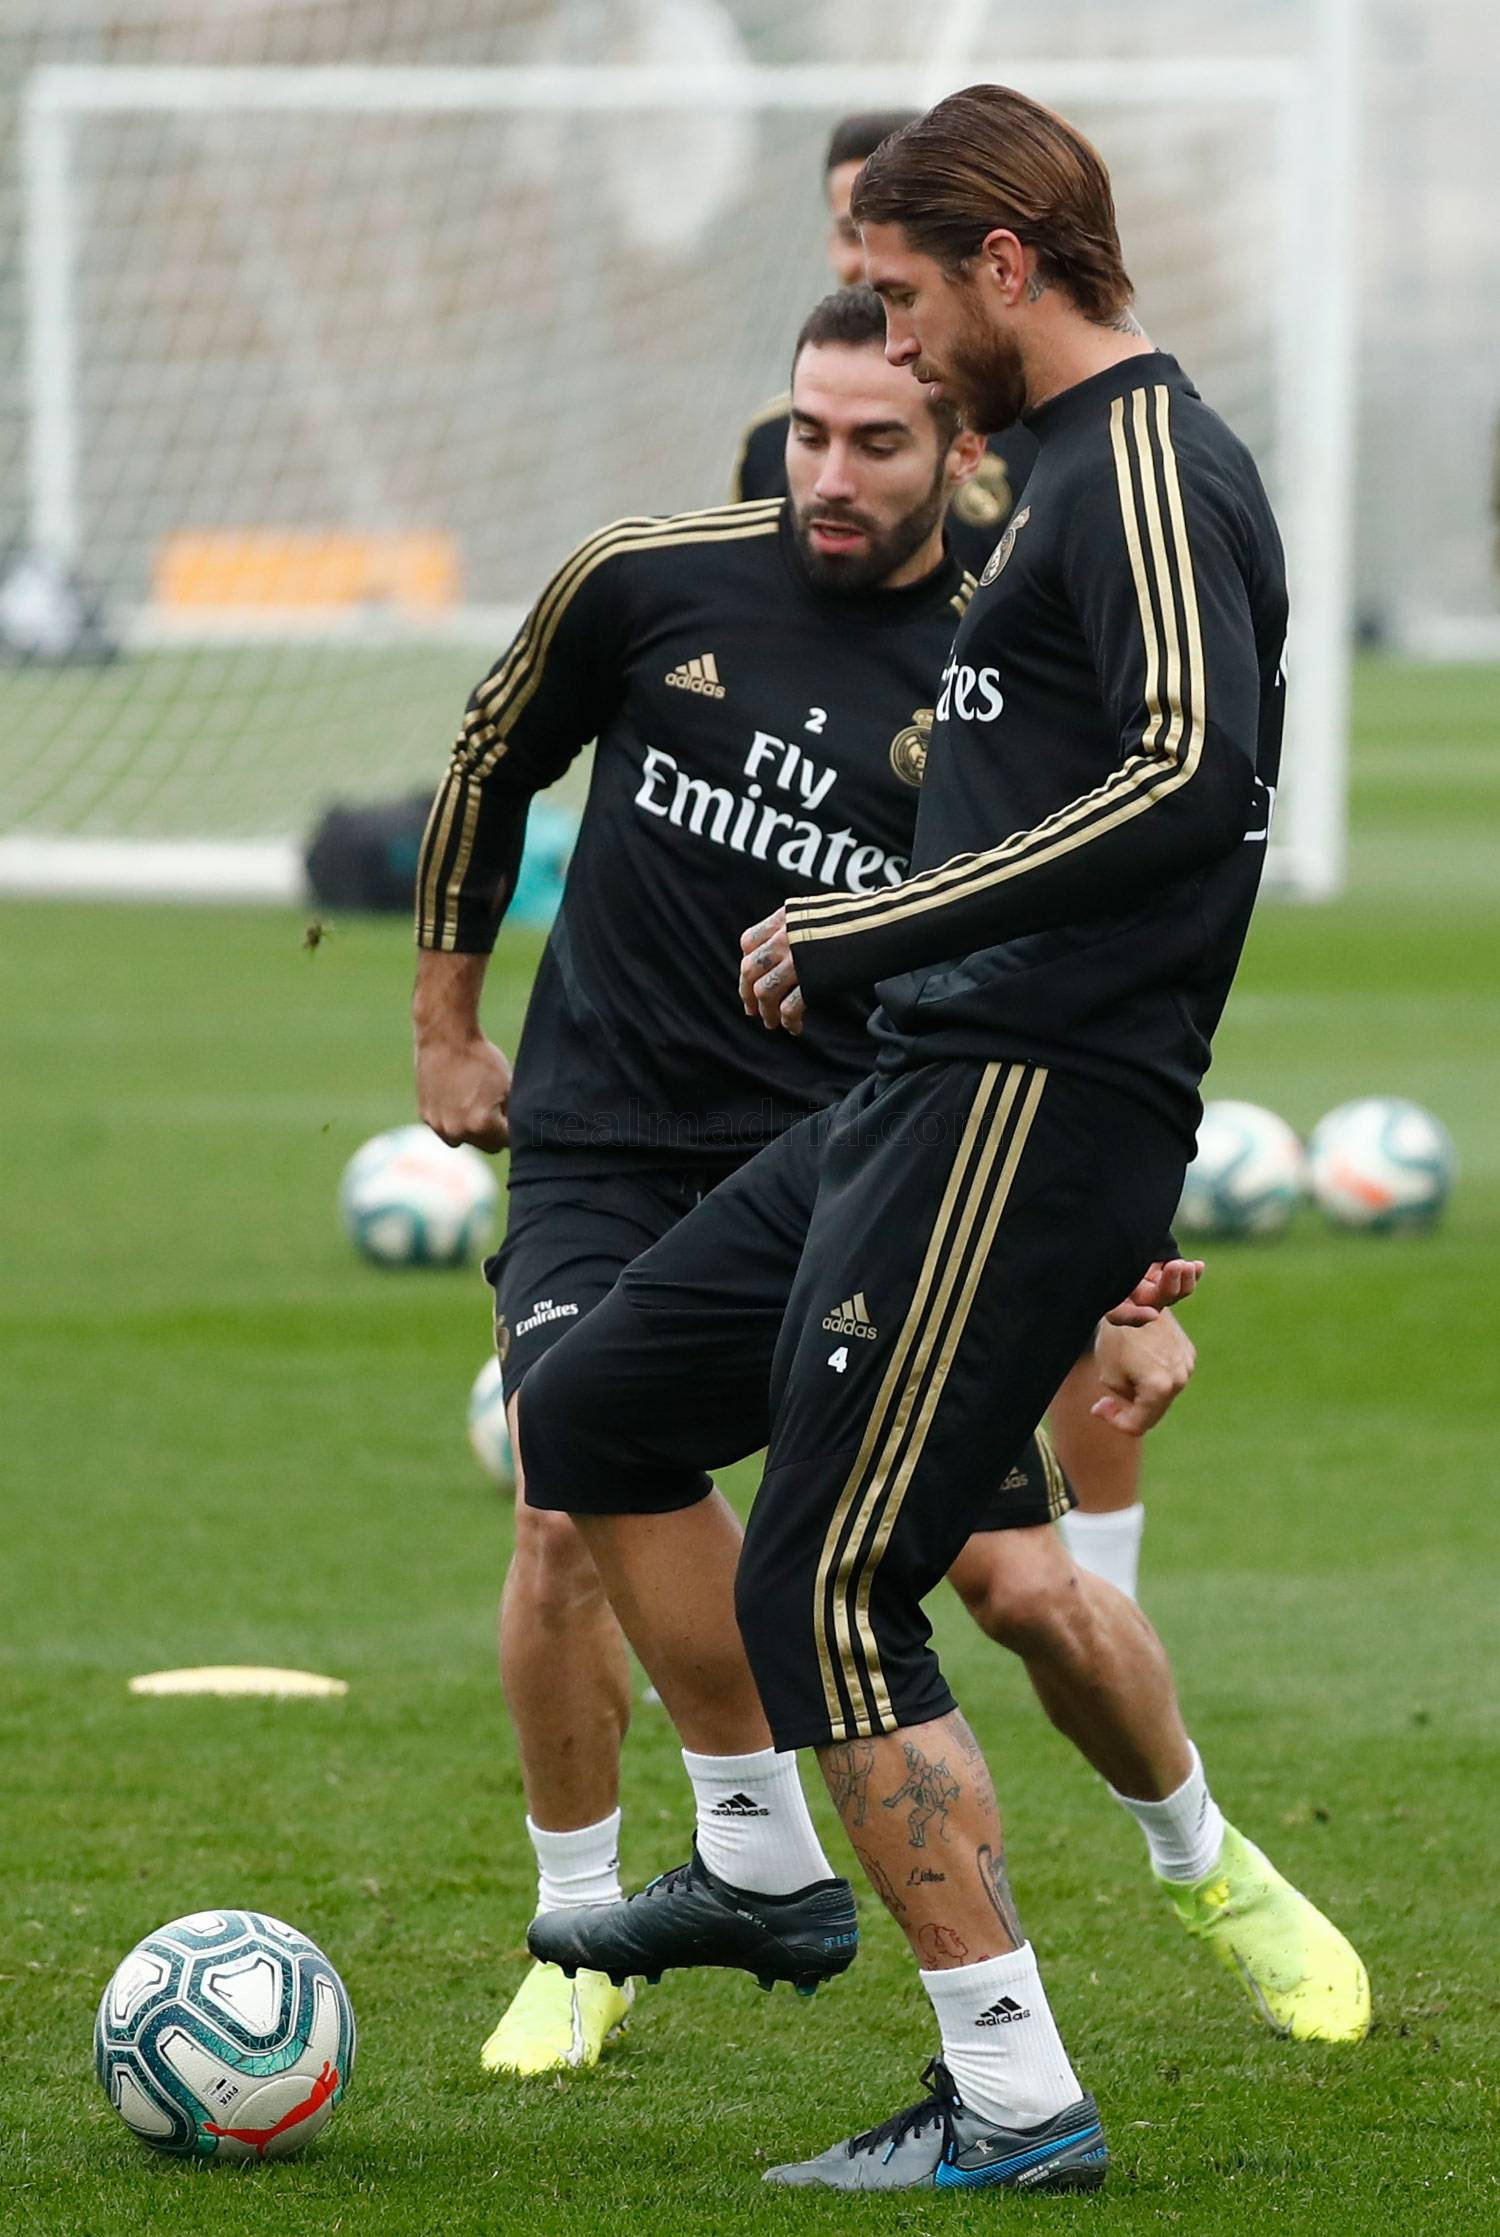 Real Madrid - Entrenamiento del Real Madrid  - 29-10-2019